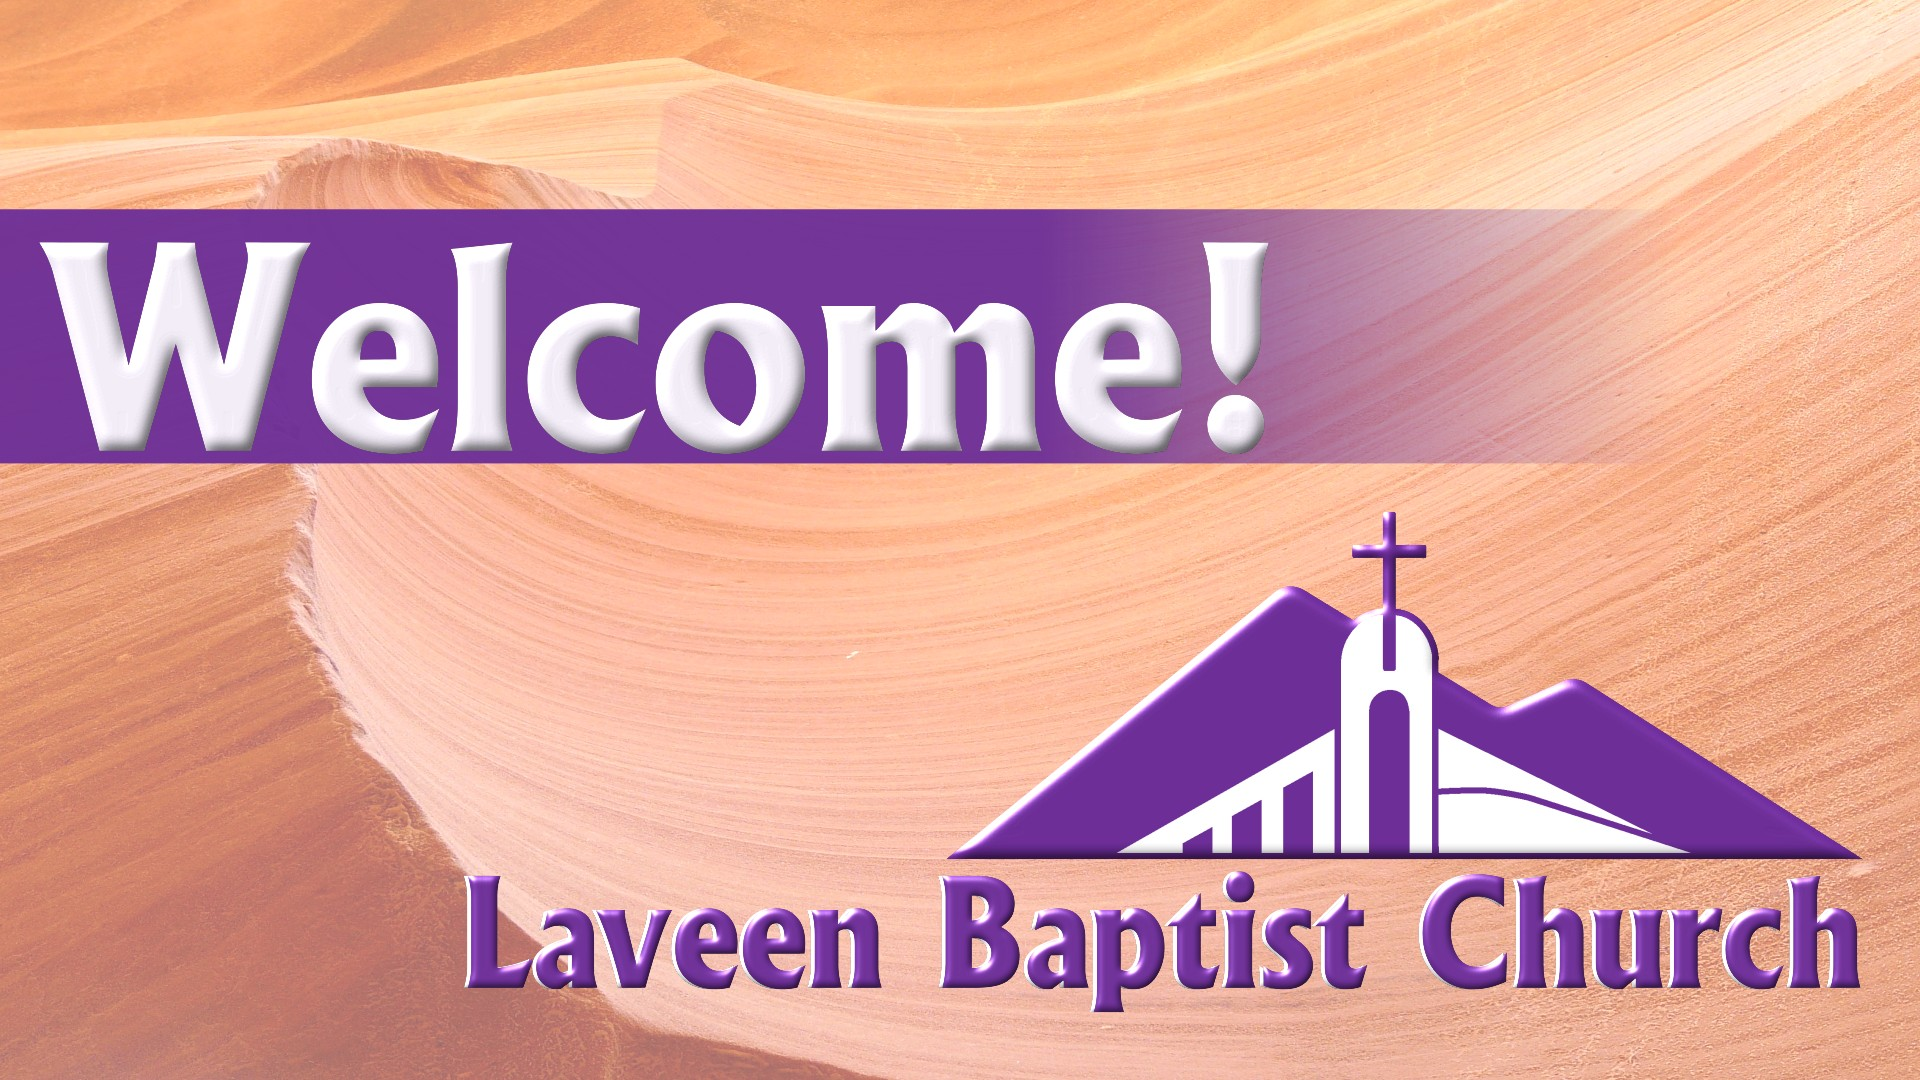 Laveen Baptist Church – Welcome to Laveen Baptist Church, a Bible